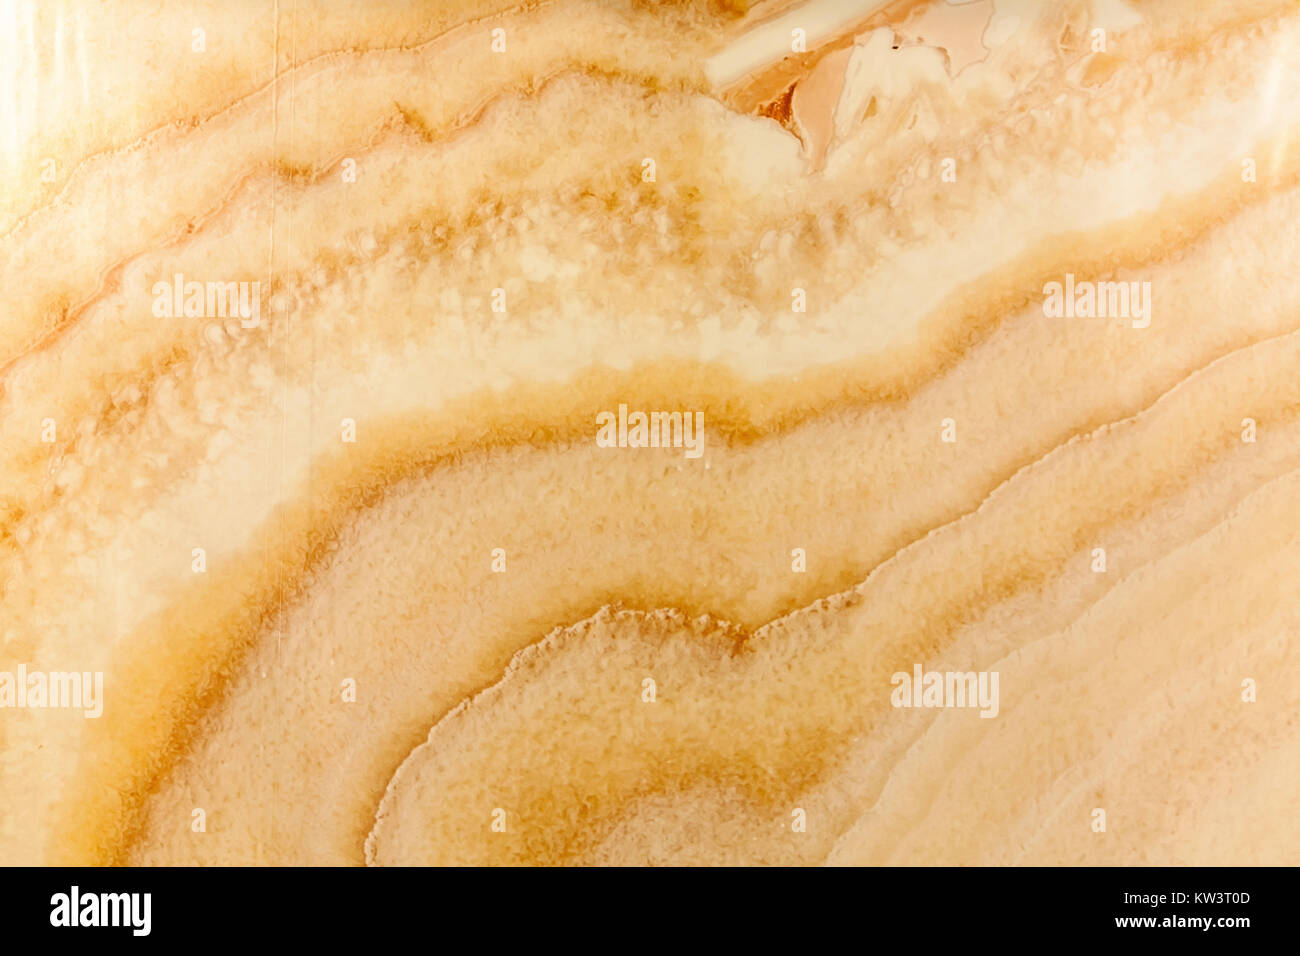 abstract texture of a surface of a natural stone of a yellowish shade, with interesting divorces and maculae. abstract - Stock Image